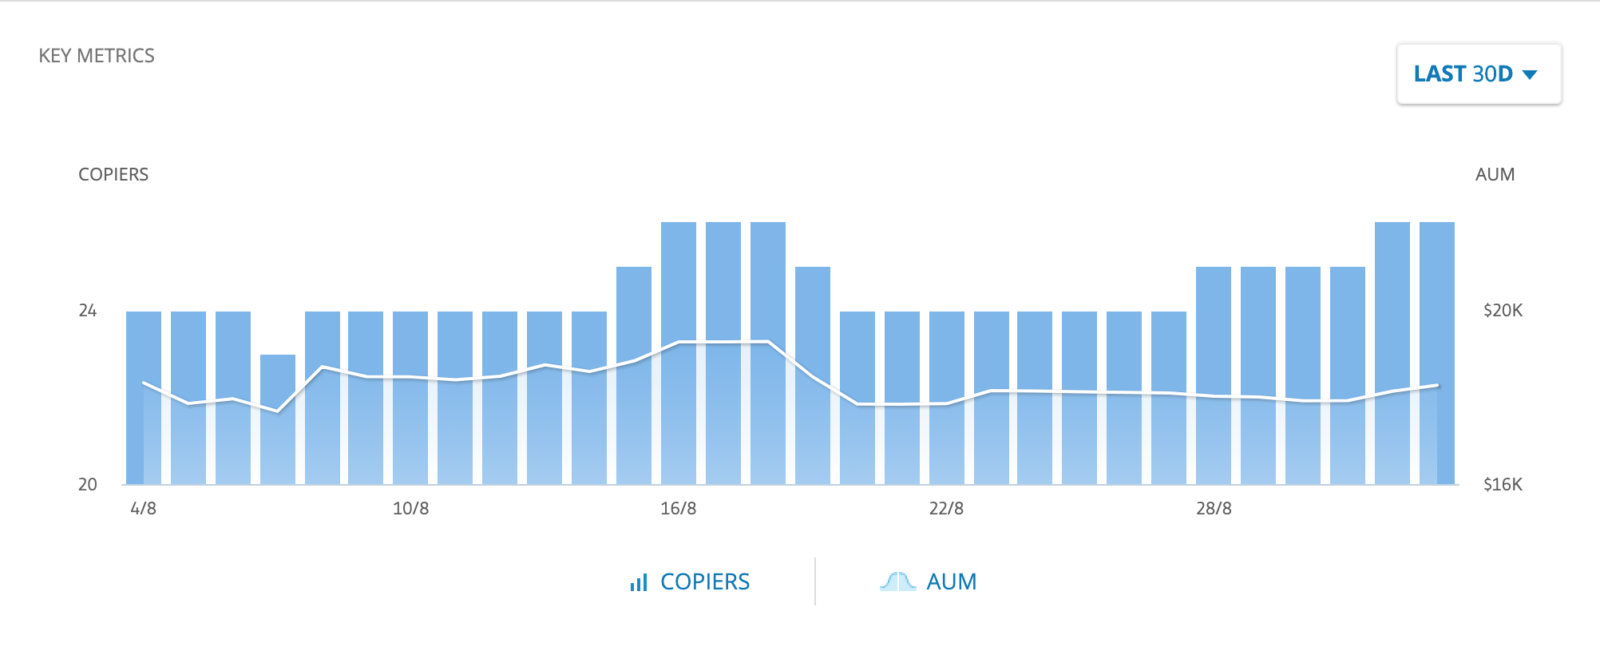 the chart showing copiers and AUM per day on eToro